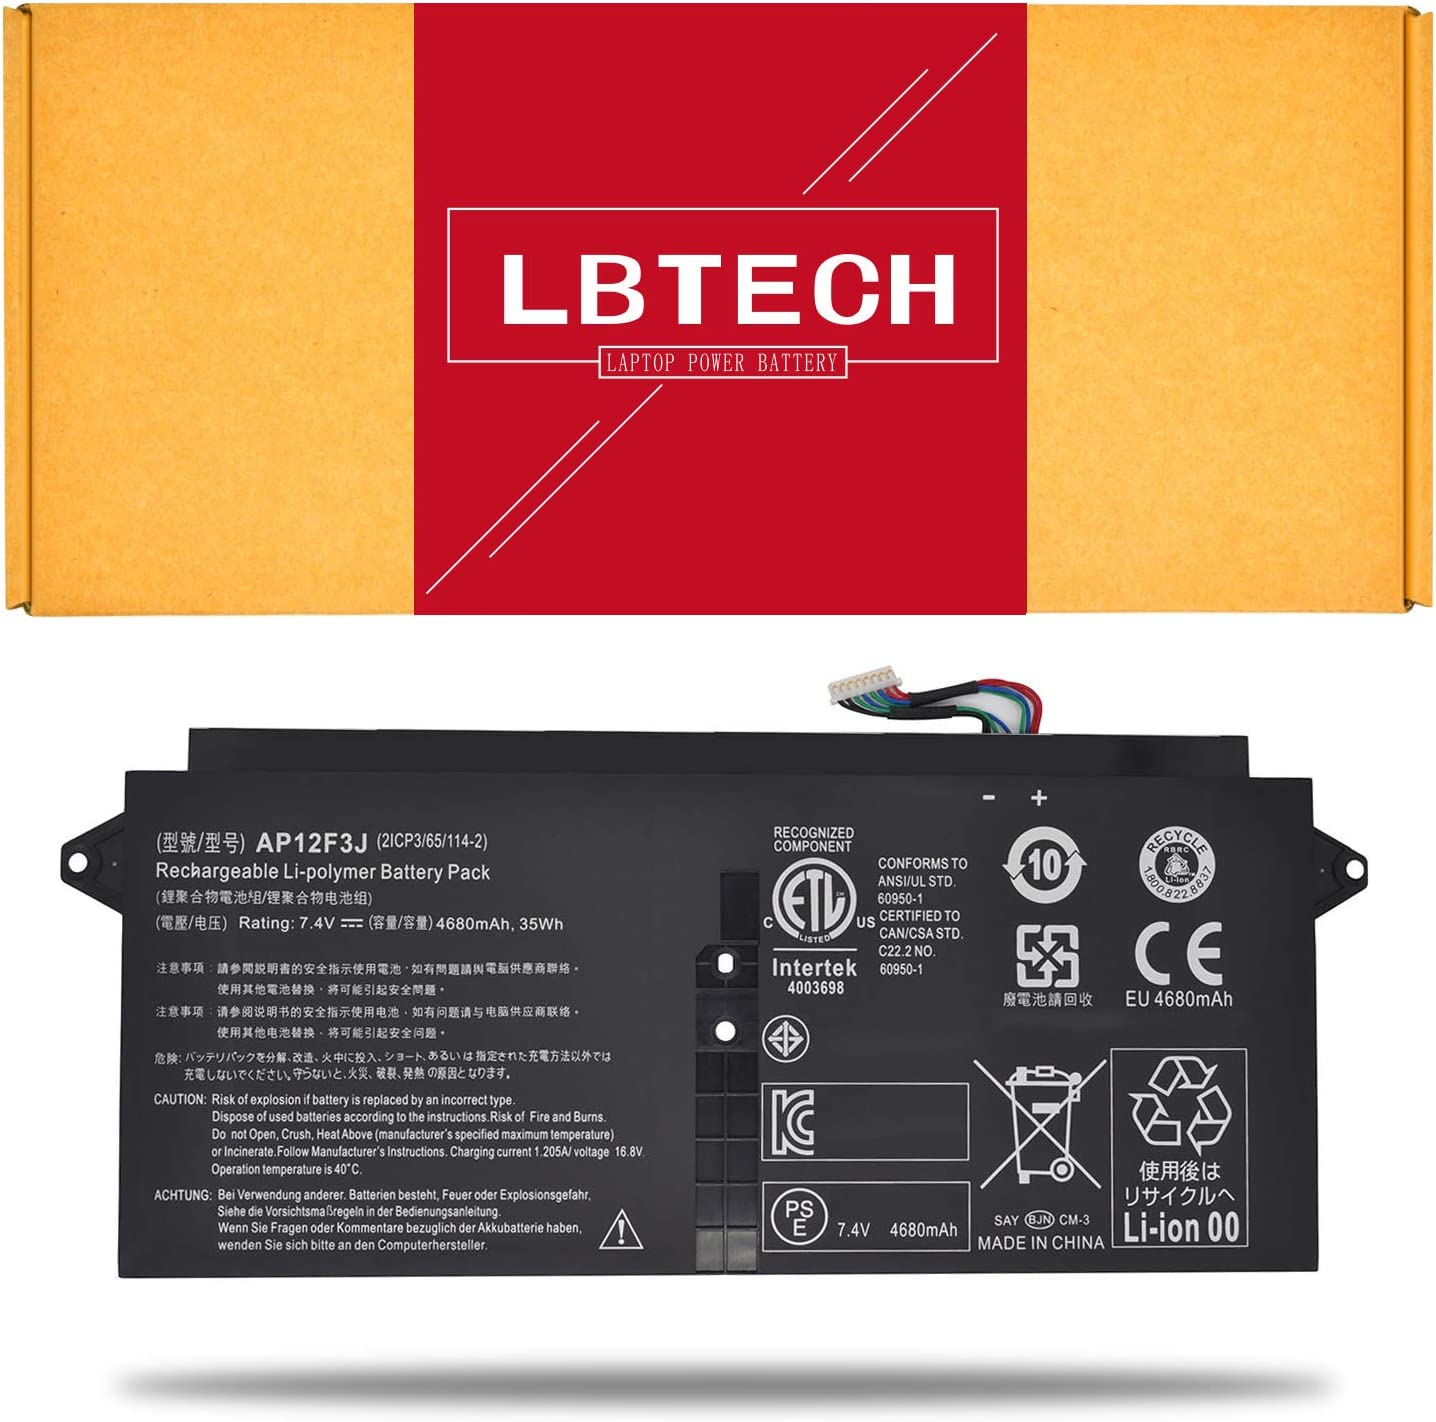 LBTECH AP12F3J Compatible Laptop Battery Replacement for Acer Aspire 13.3-Inch S7 Touchscreen Ultrabook S7 Ultrabook S7-391 S7-392 S7-393 Series 2ICP3/65/114-2 7.4V 35Wh